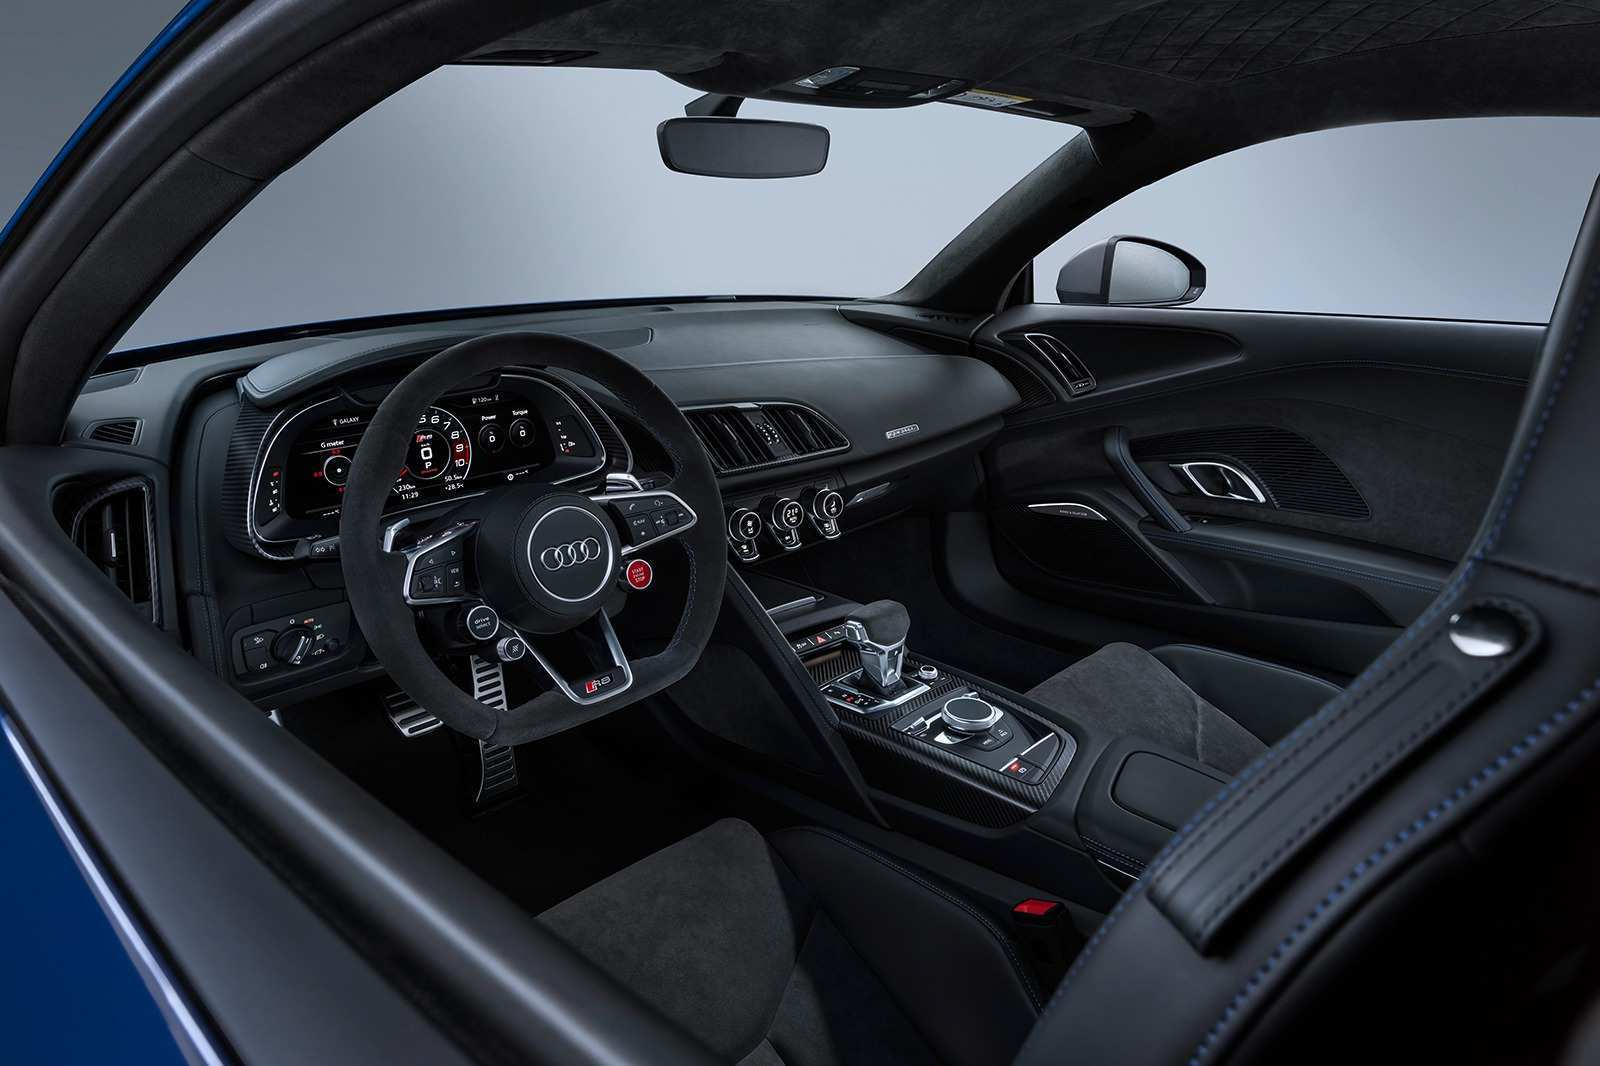 56 Great The Audi V8 2019 Price And Release Date Release Date for The Audi V8 2019 Price And Release Date